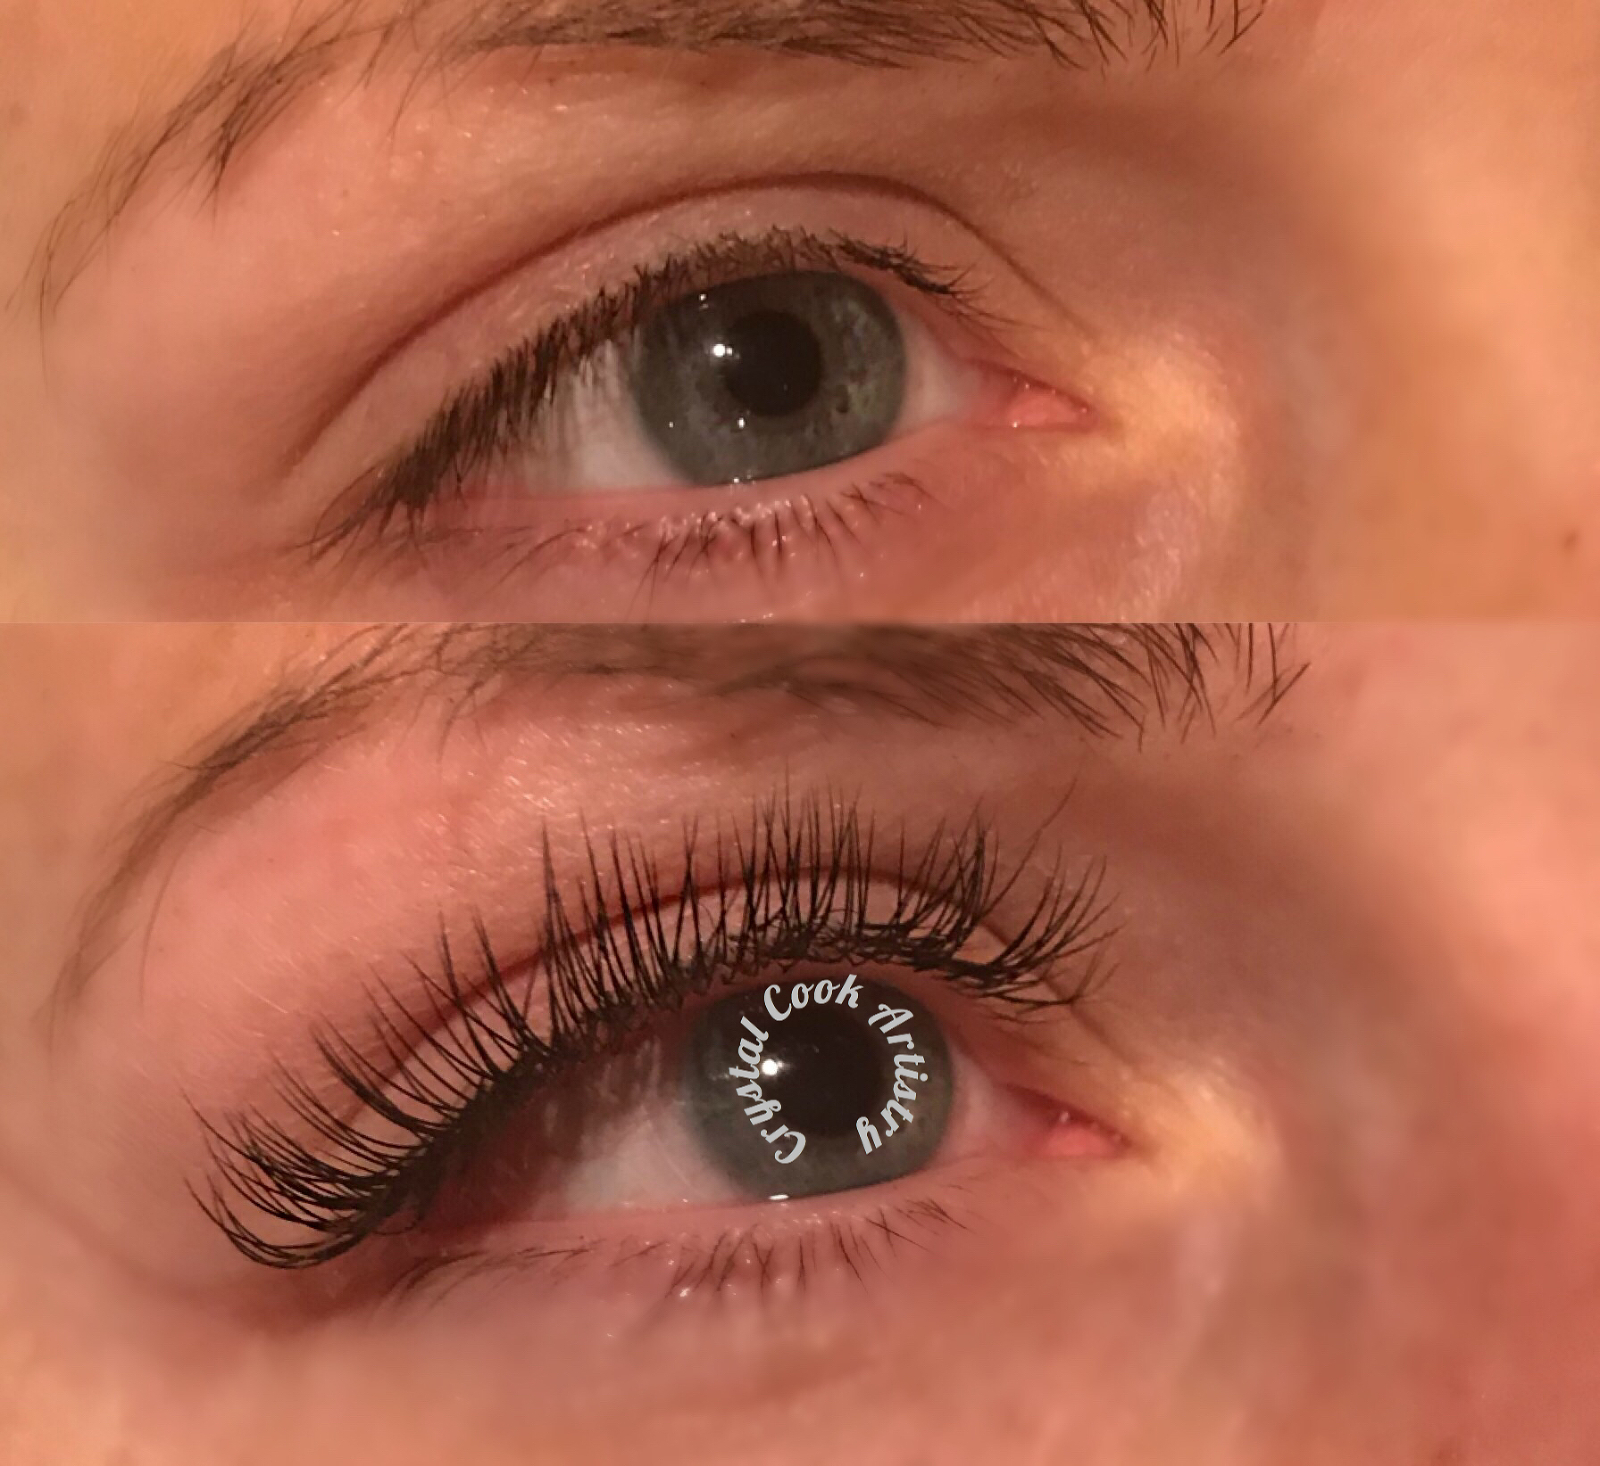 Lash Extension Feature Crystal Cook Artistry